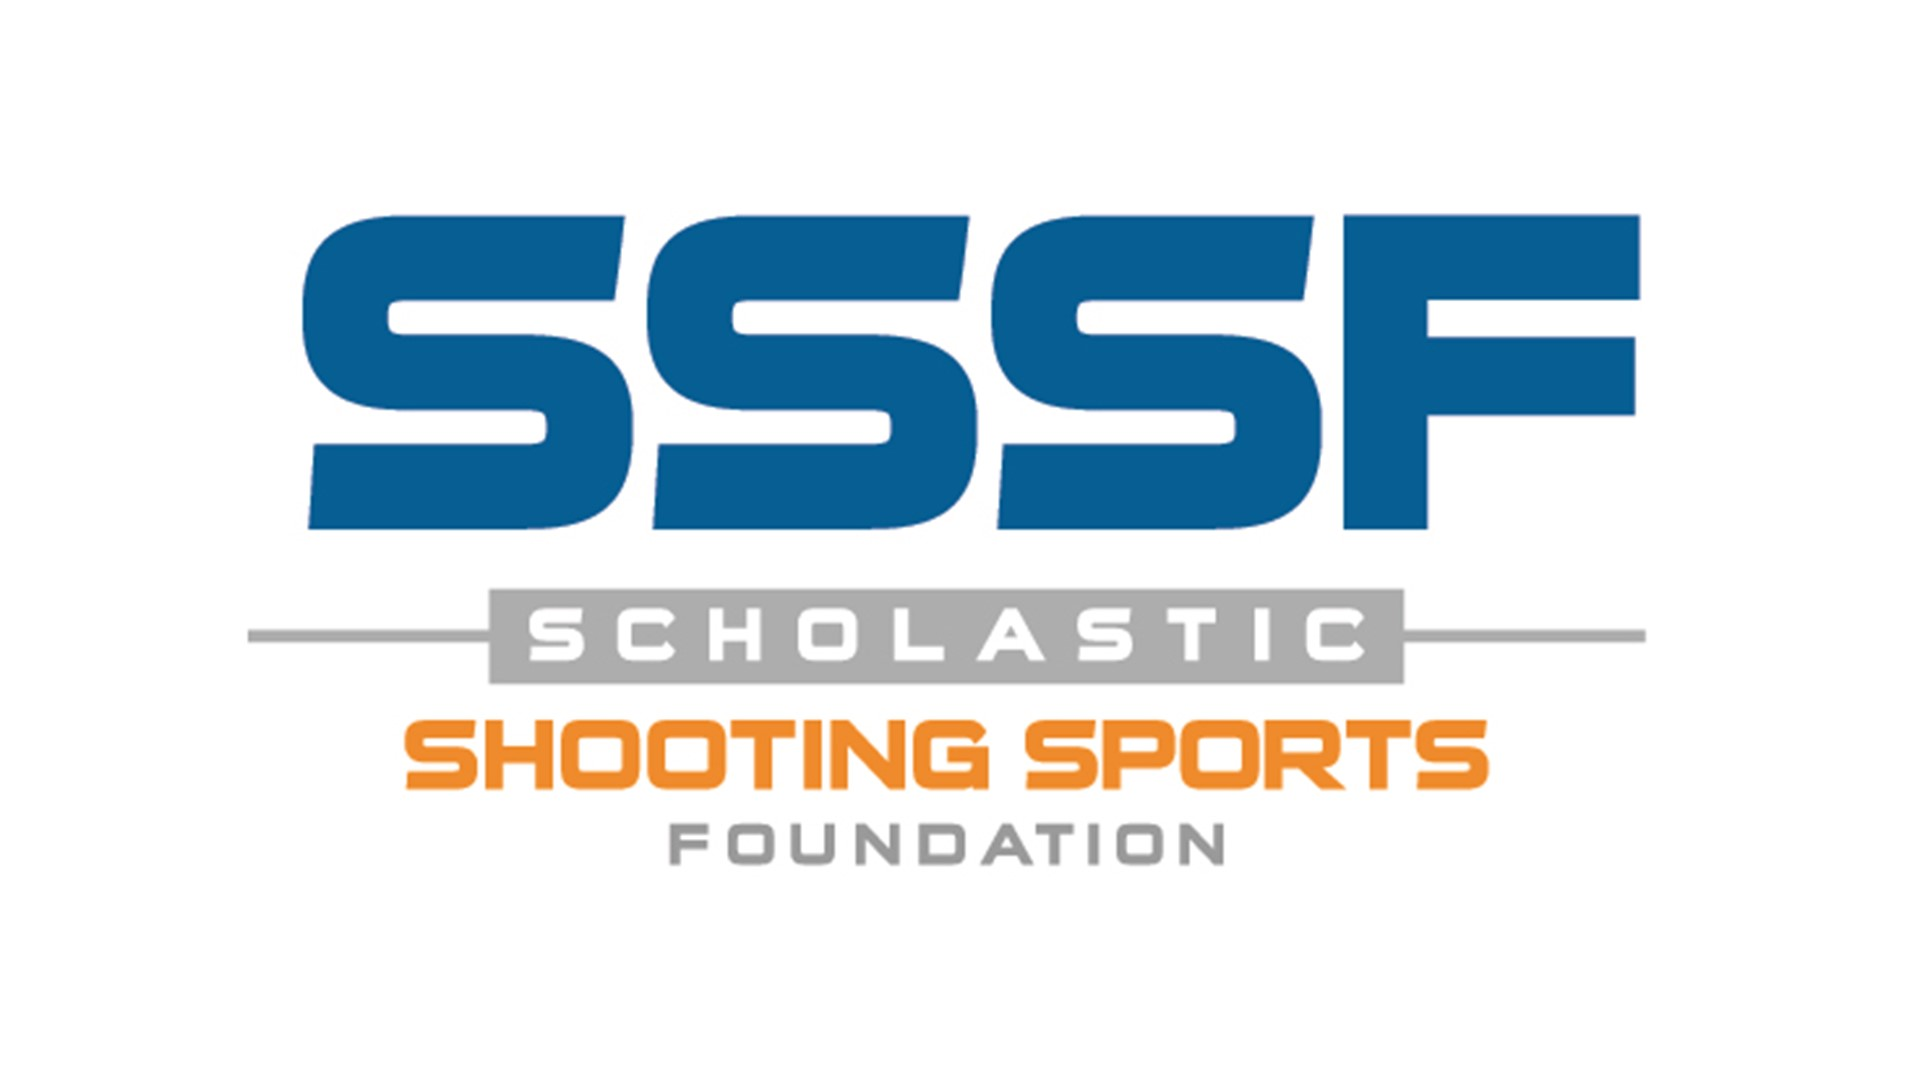 Vision 20/20 Campaign Raises $400k for Scholastic Shooting Programs